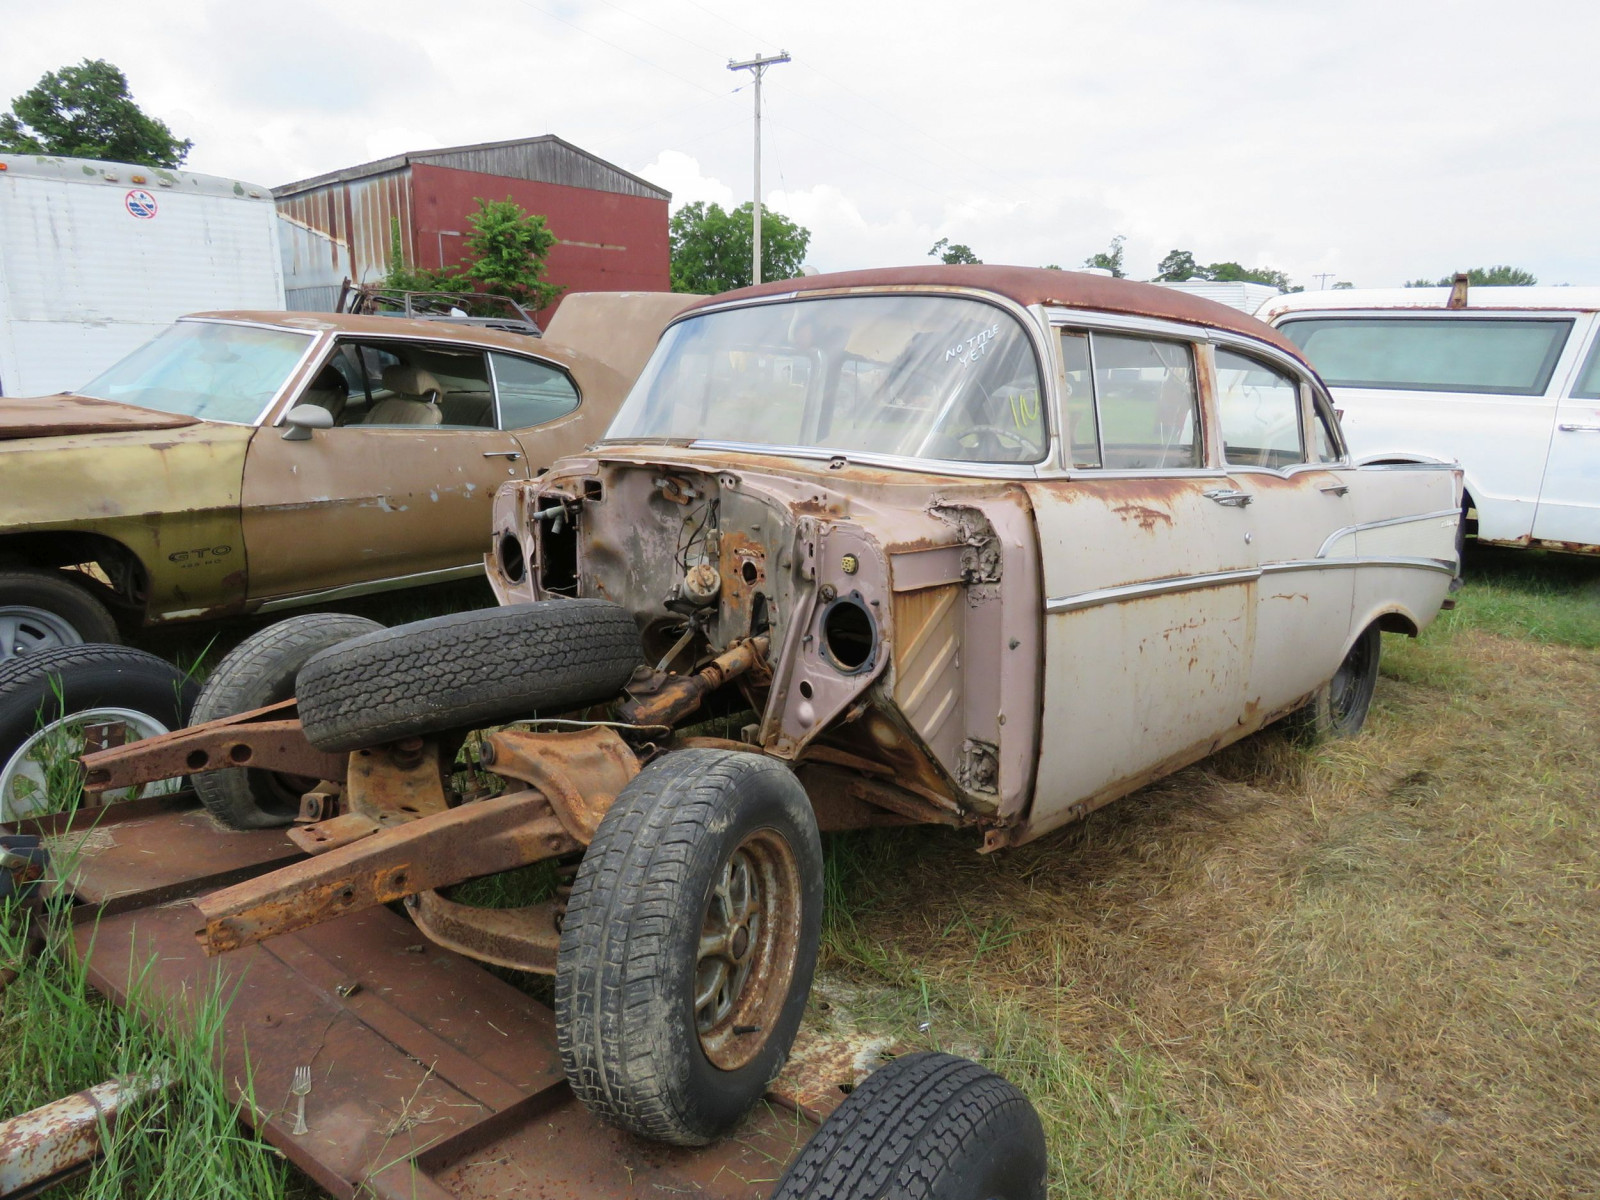 1957 Chevrolet 4dr Sedan for Rod or Restore - Image 1